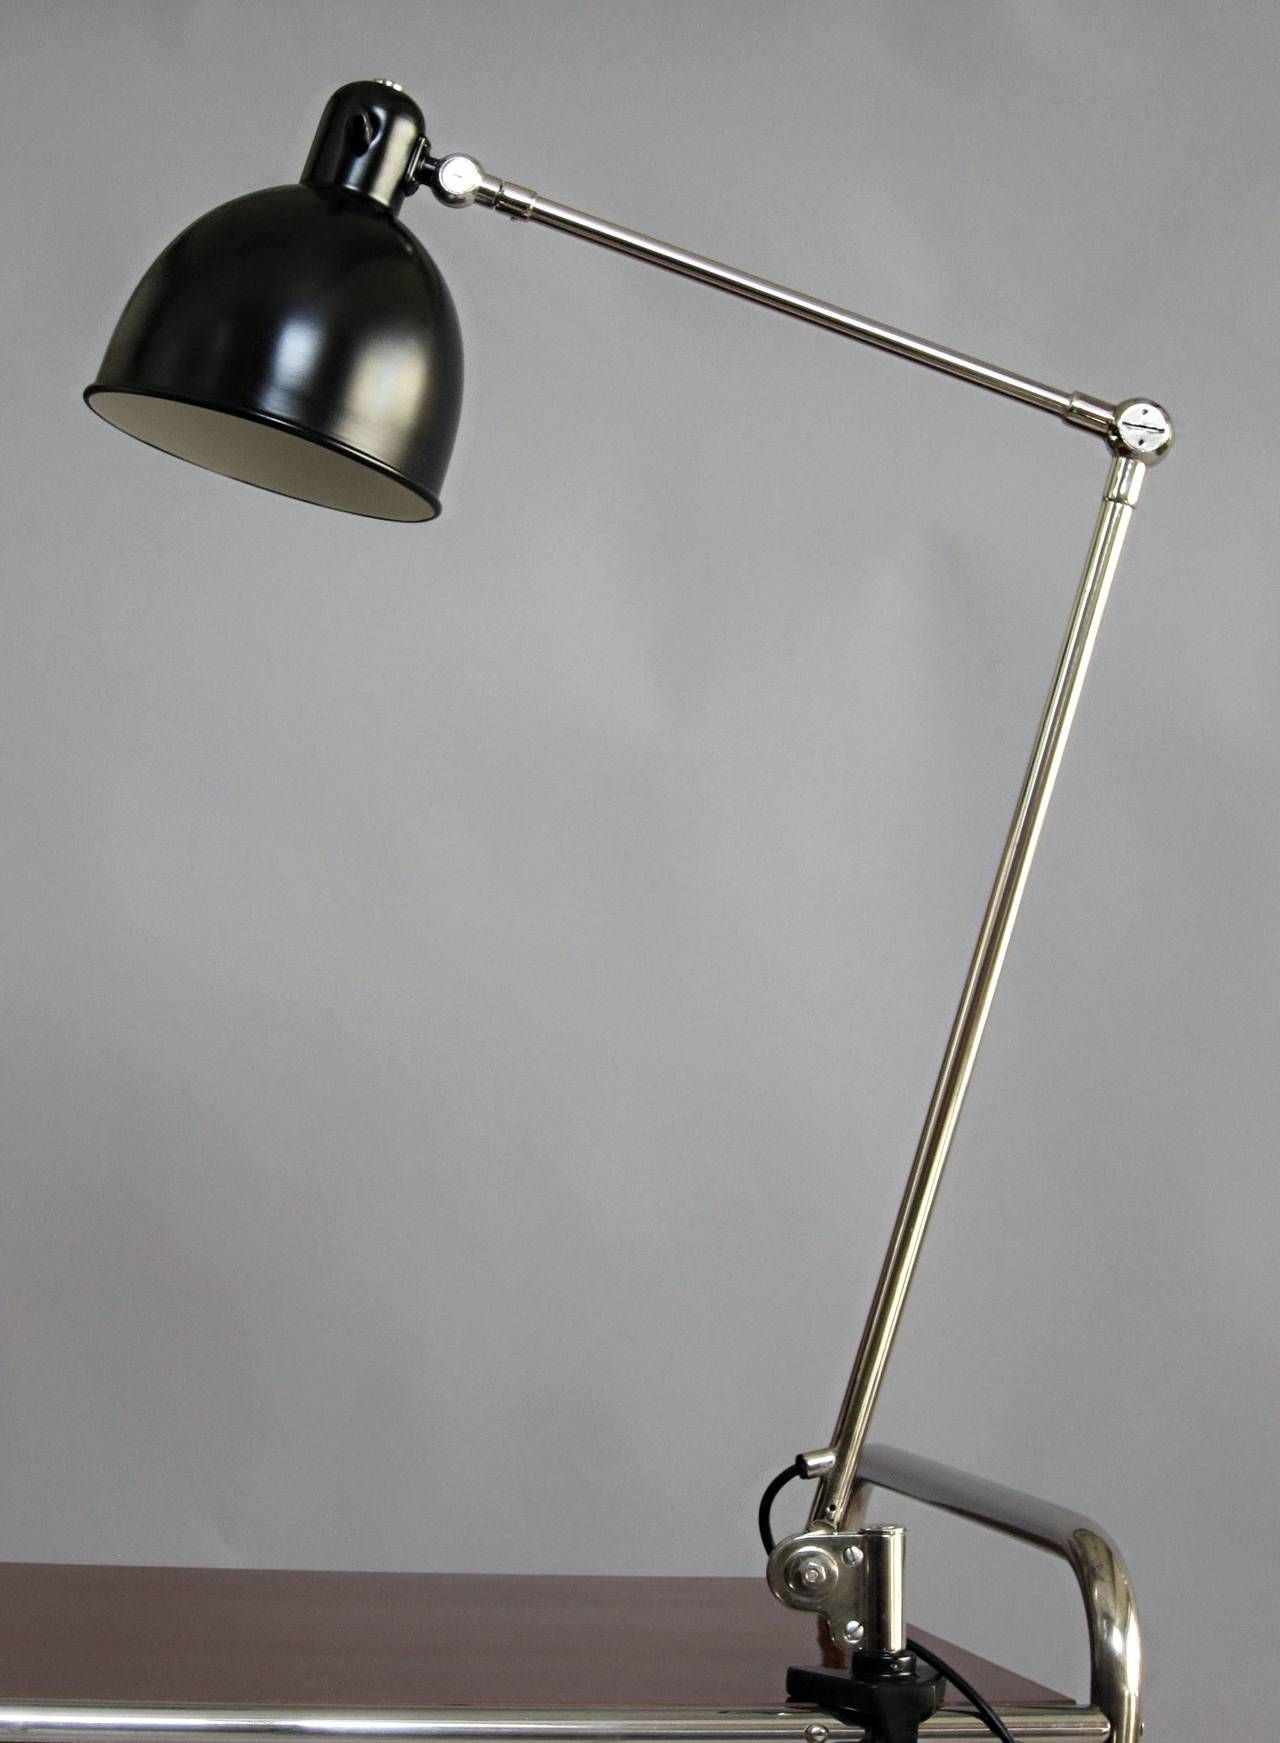 Workshop Clamp Lamp By Belmag 1940s Image 2 Lamp Vintage Table Lamp Clamp Lamp